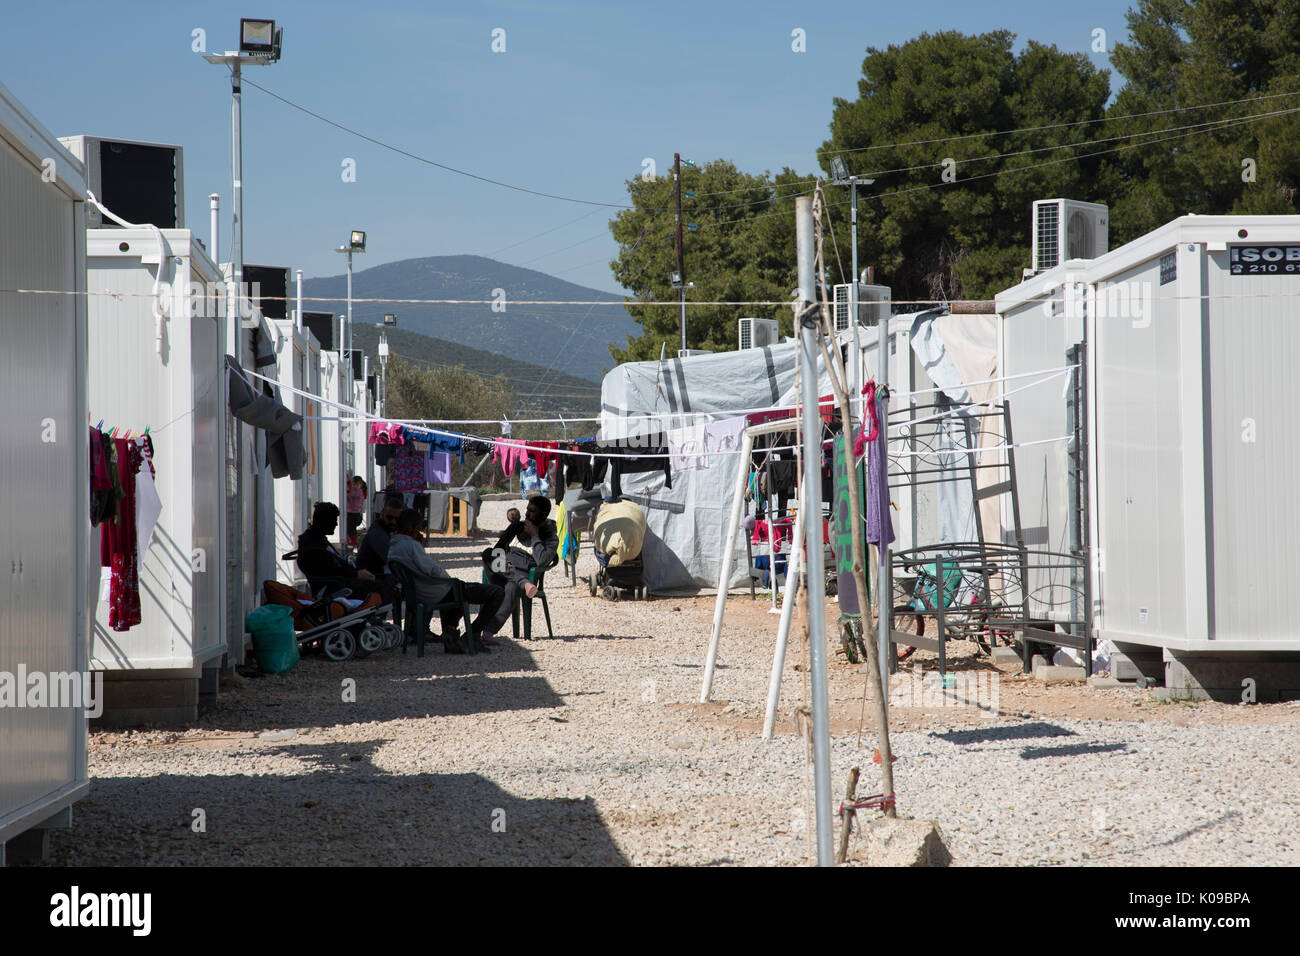 Men sitting in the shade between rows of prefabricated accommodation units at Ritsona Refugee Camp, Greece. - Stock Image